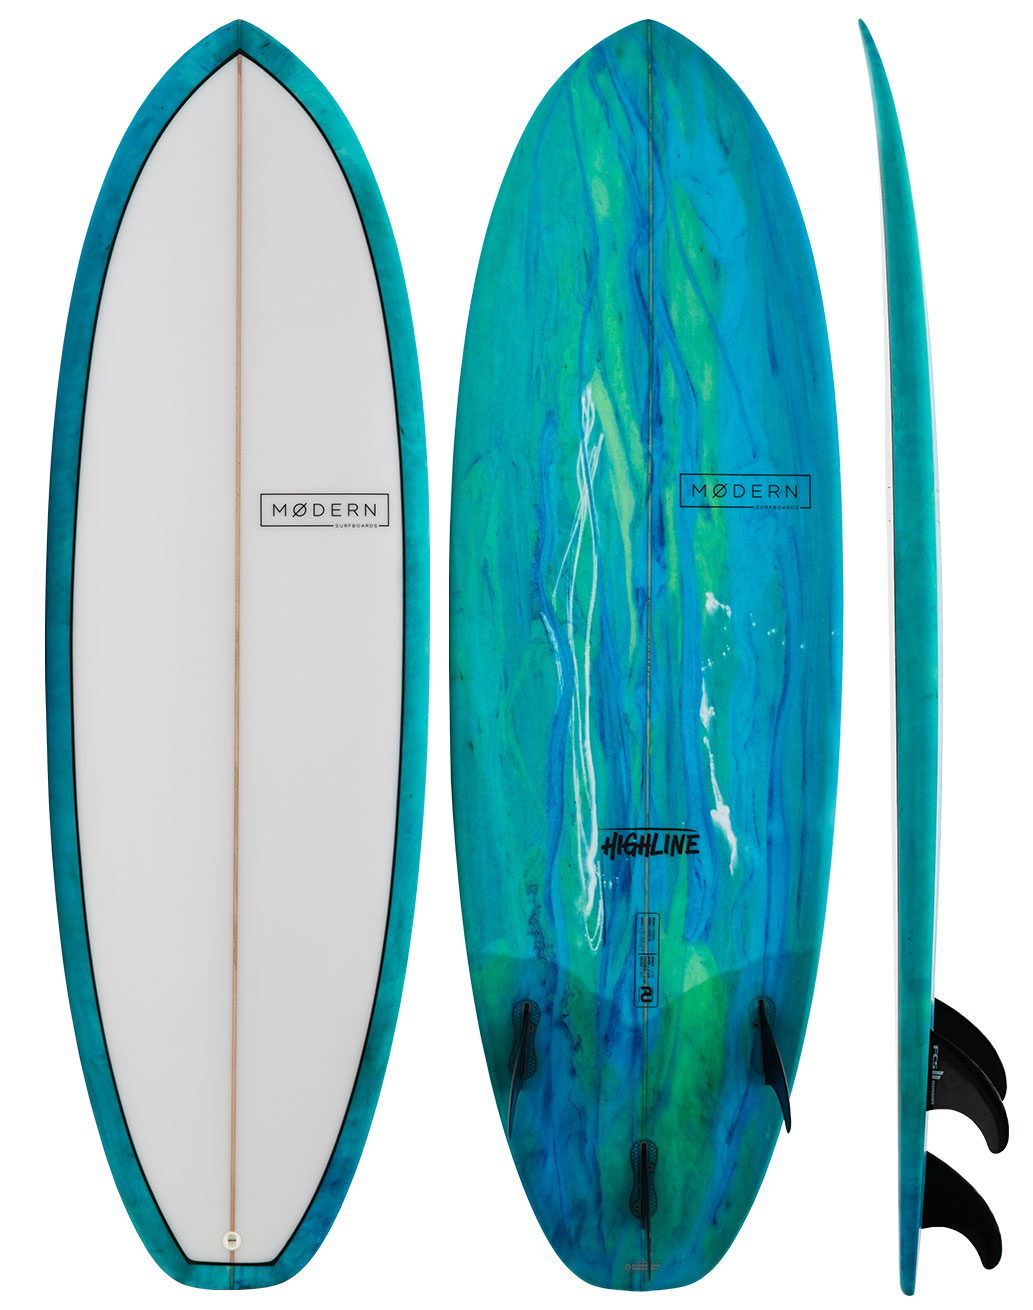 Modern Highline PU Shortboard - Sea